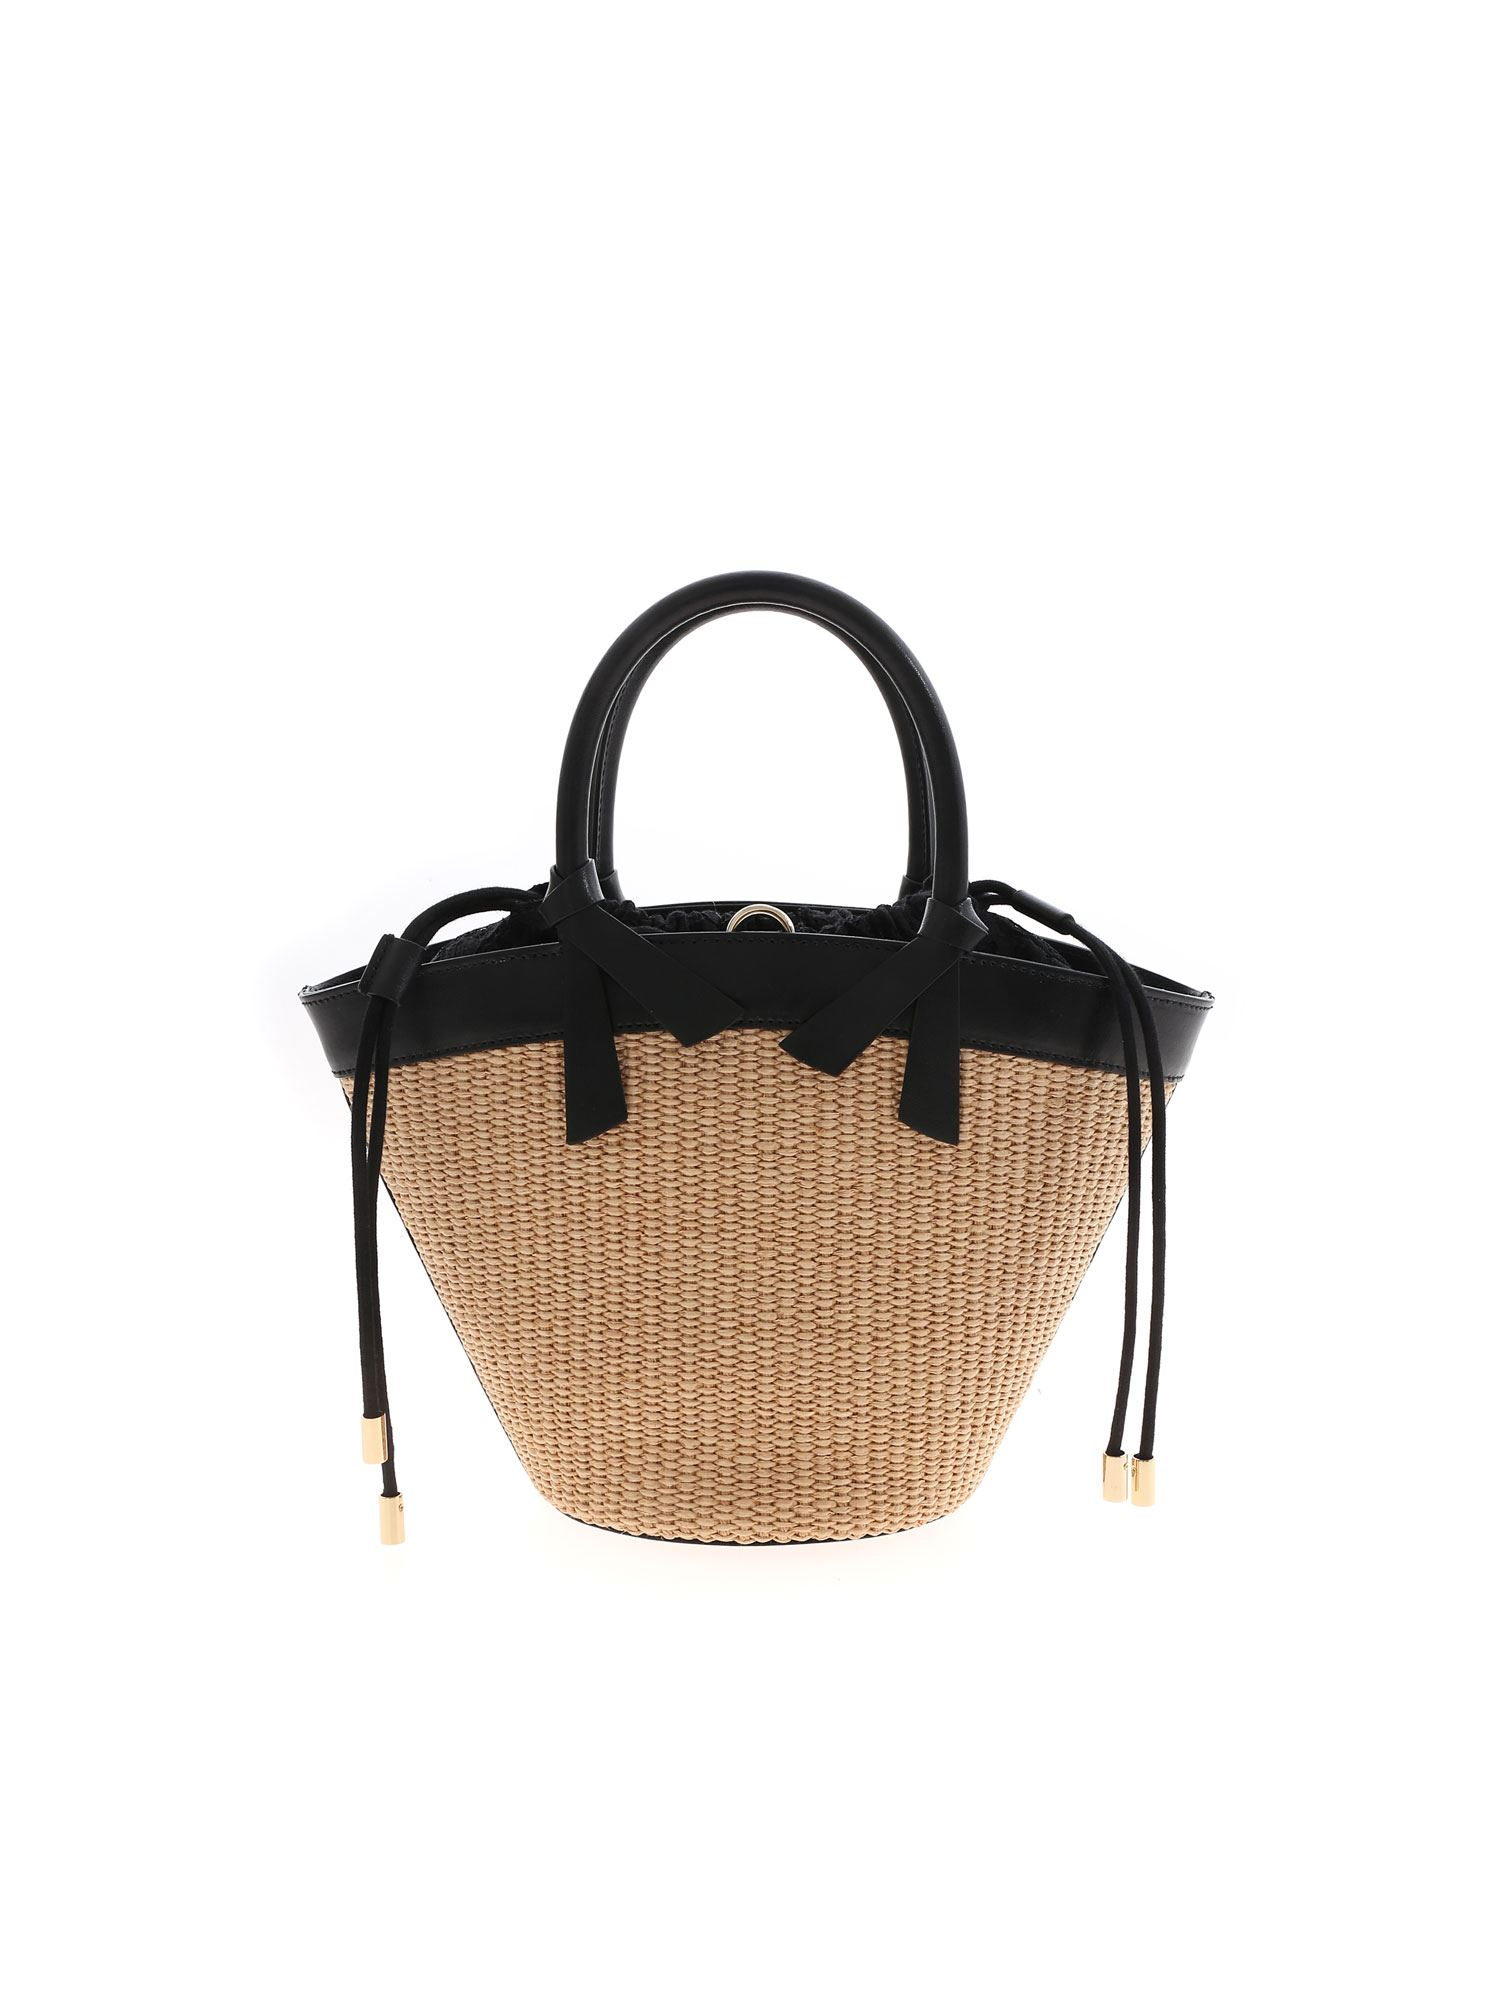 Ermanno Scervino Leathers JOLIE SMALL BAG IN BEIGE AND BLACK